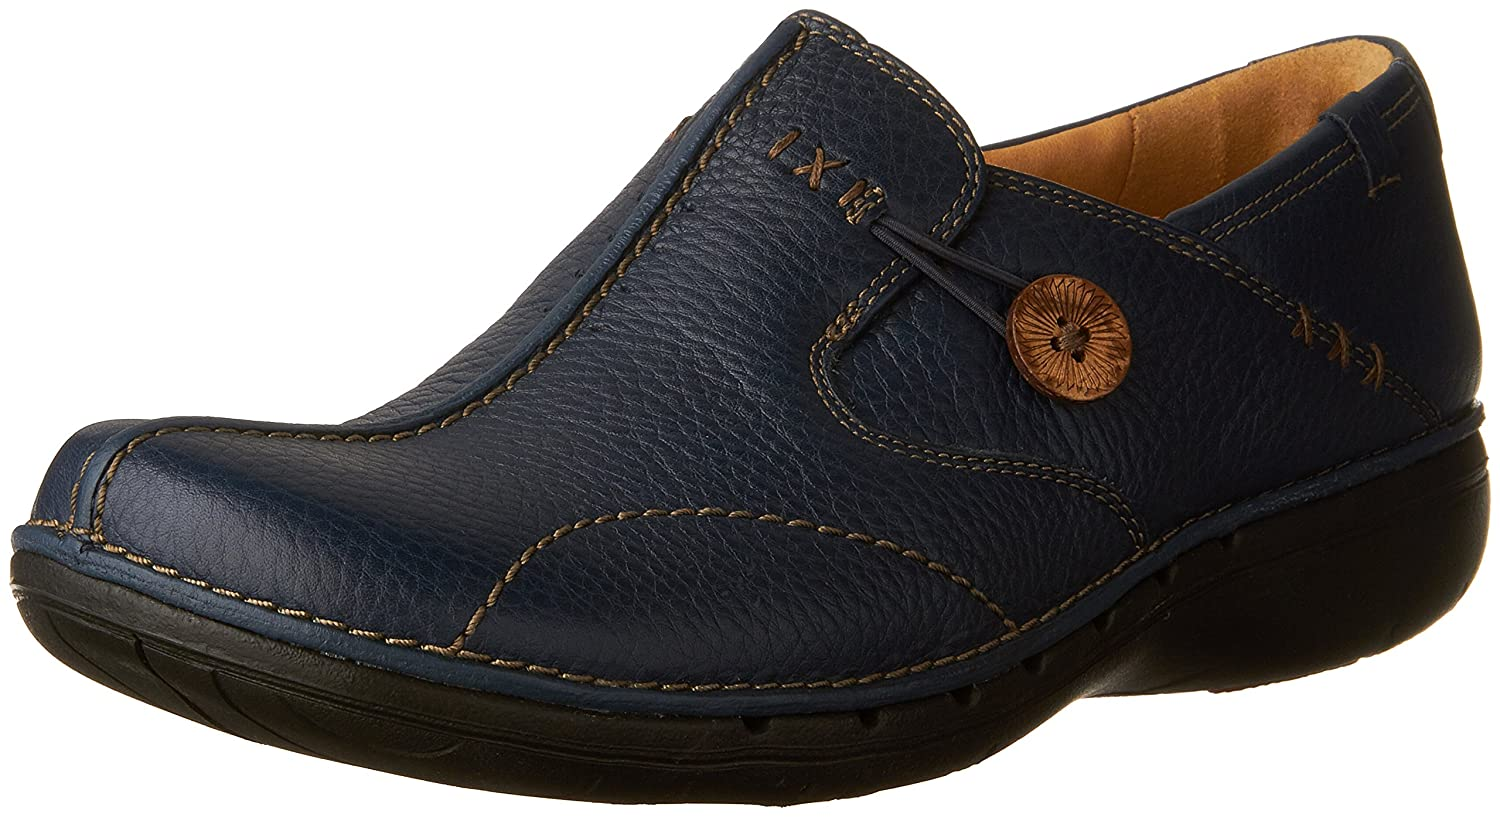 Clarks Clarks Clarks Unstructurouge Un.loop Slip-on chaussures 662